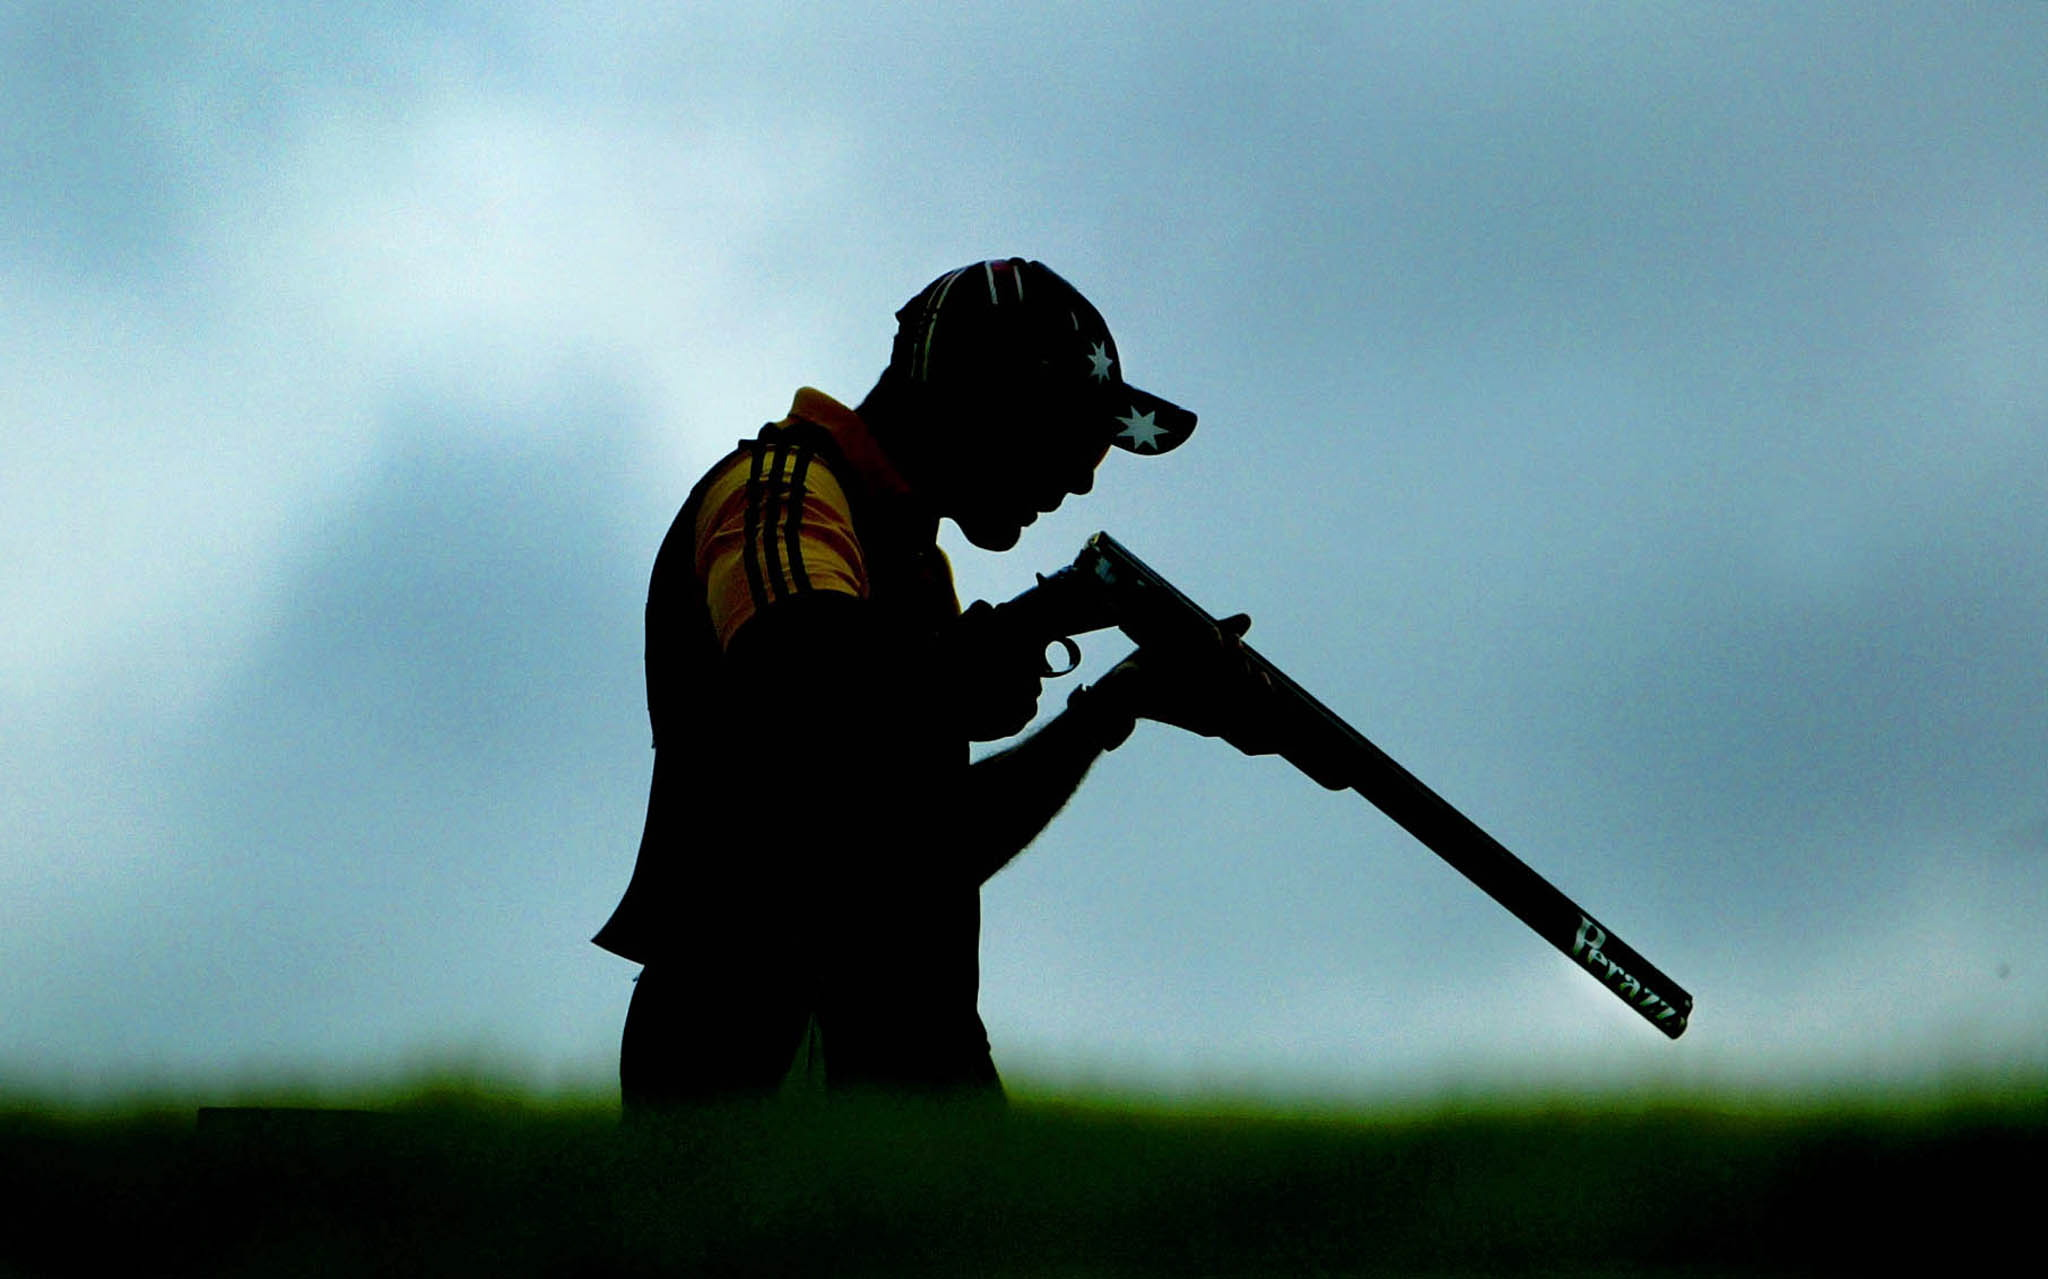 Australian trap shooter Michael Diamond blows down his rifle while competing in the 2002 Commonwealth Games.Diamond won the gold medal and compatriot Adam Vella won the silver medal.  Image supplied by Action Images/ Kieran Doherty.